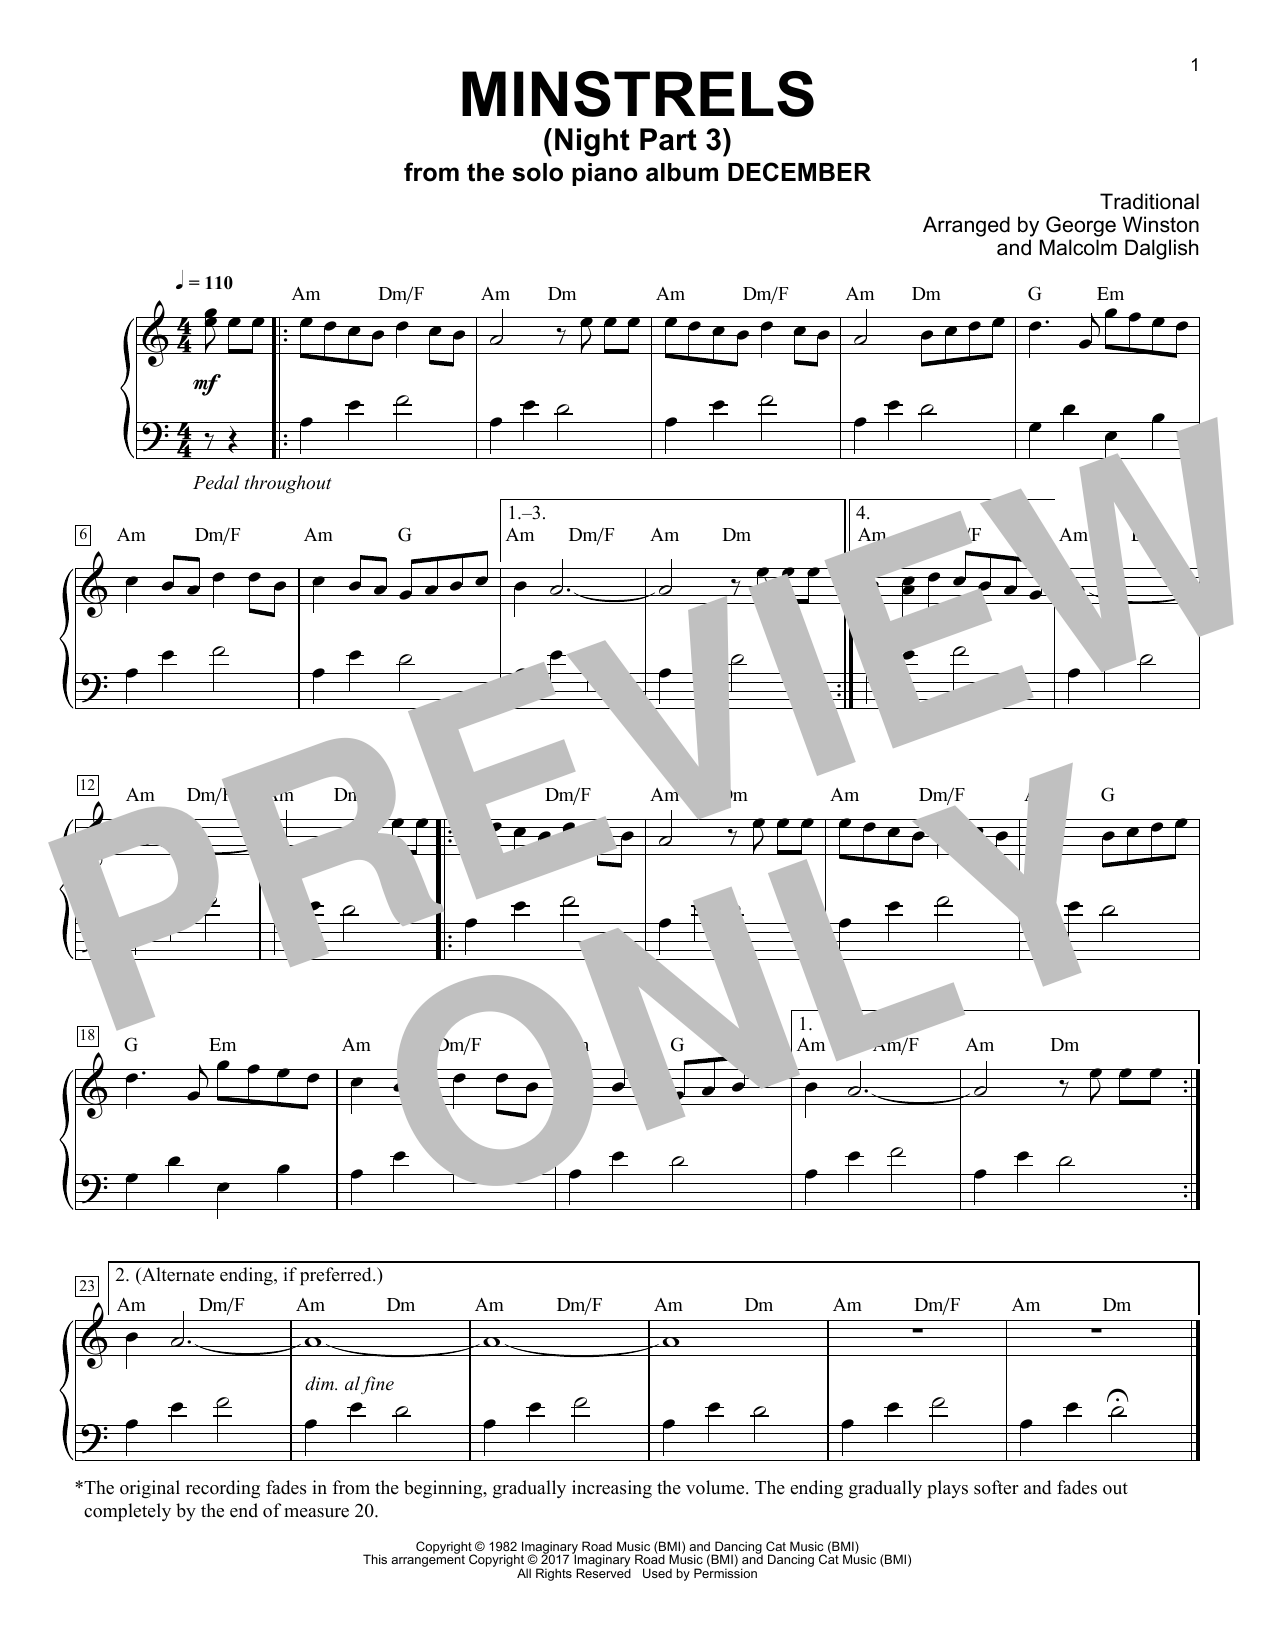 George Winston Minstrels (Night Part 3) sheet music notes and chords